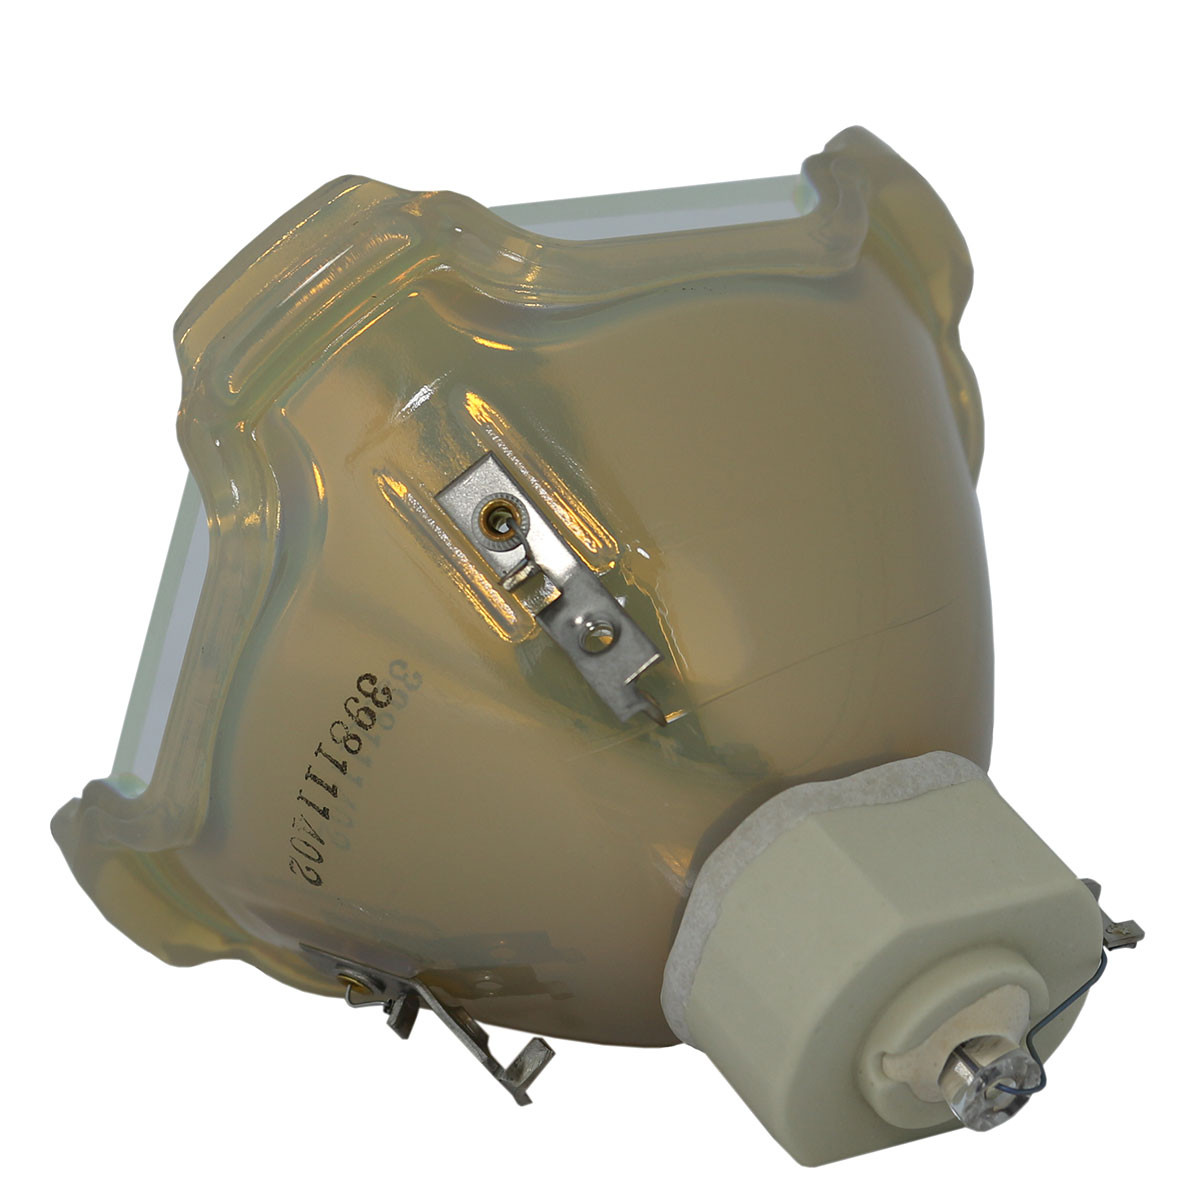 Original Osram Projector Lamp Replacement with Housing for Canon LV-7590 - image 2 de 5